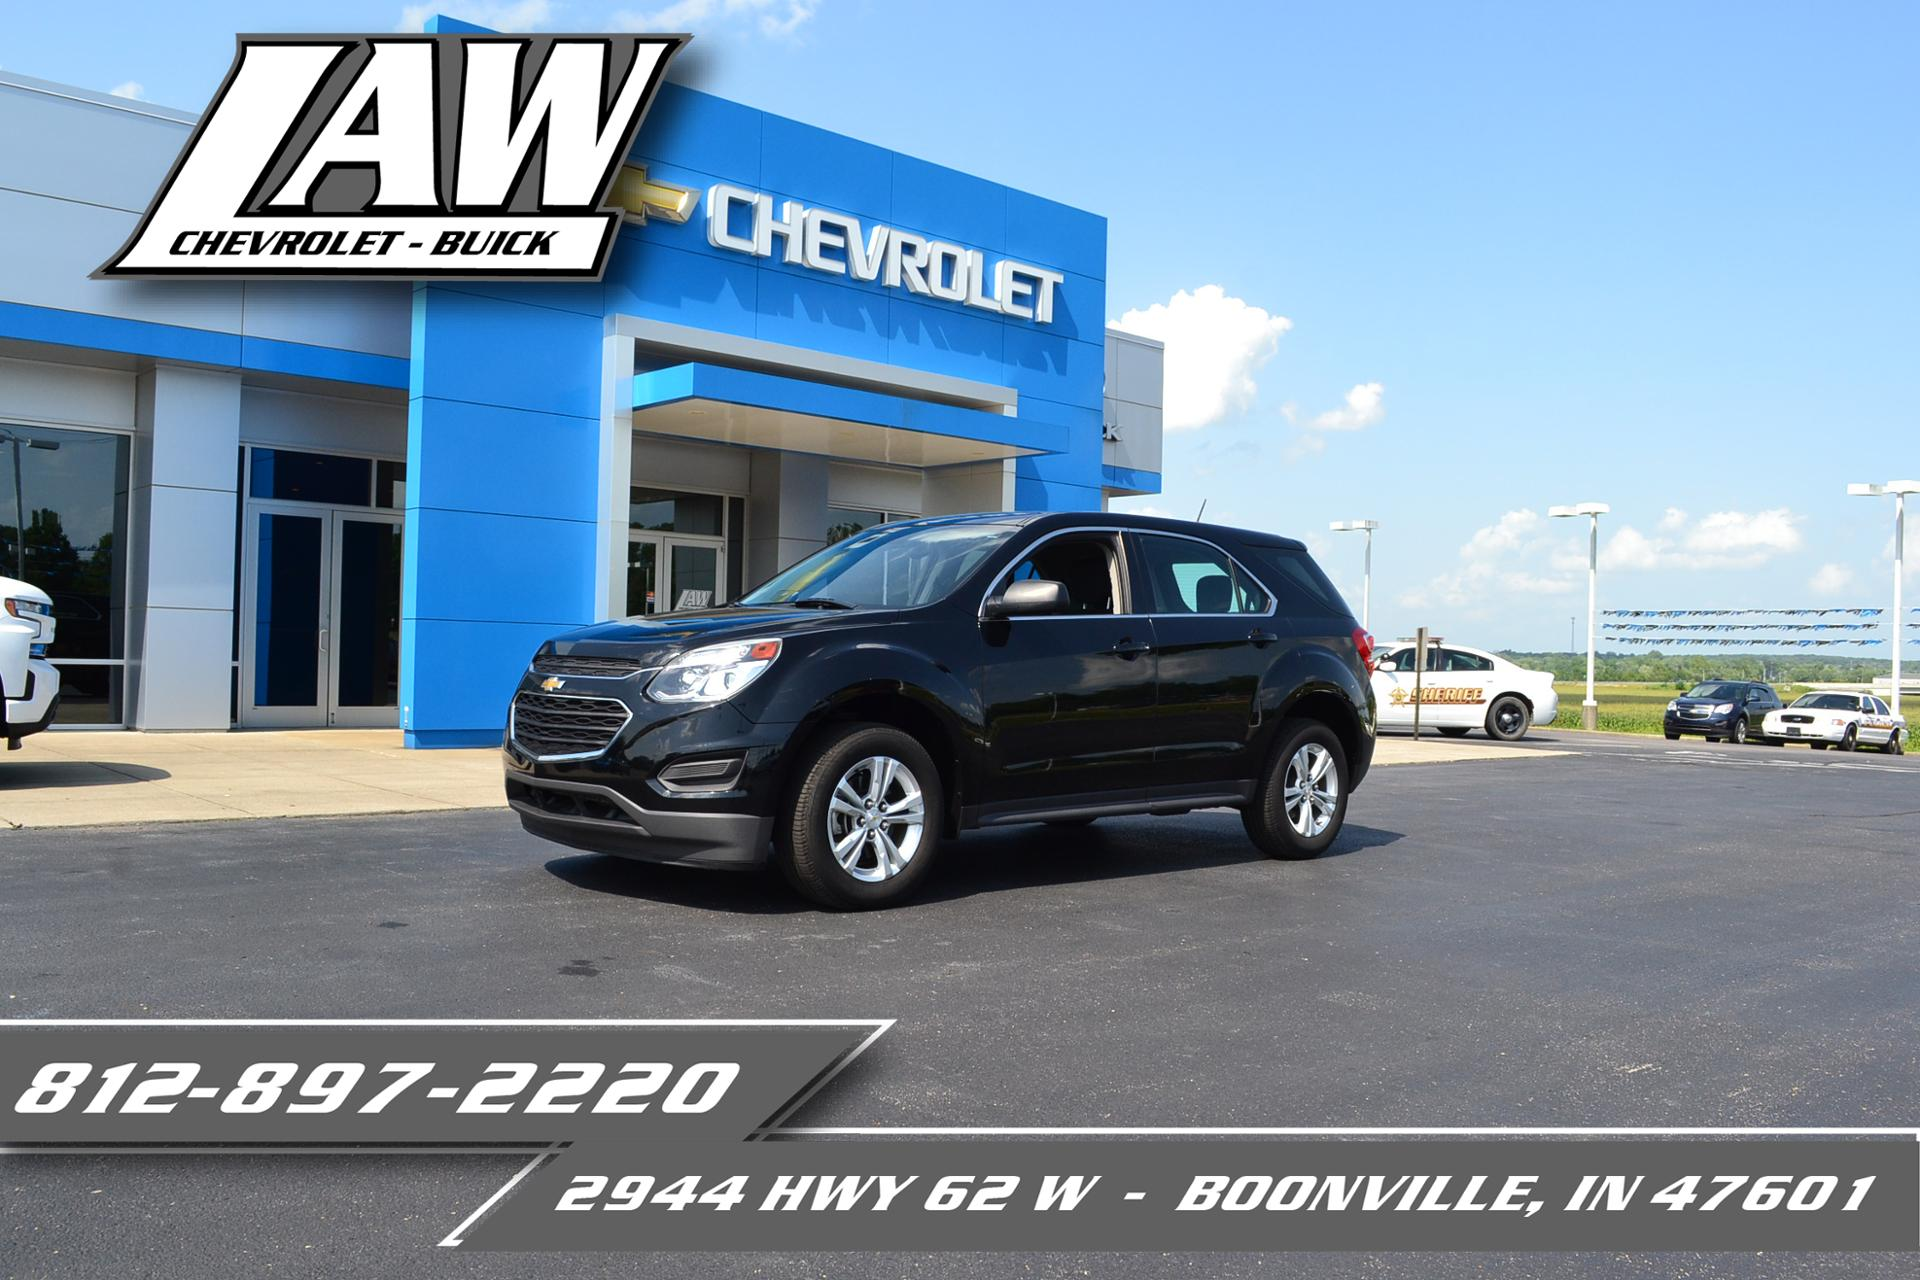 2017 Chevrolet Equinox Vehicle Photo in BOONVILLE, IN 47601-9633